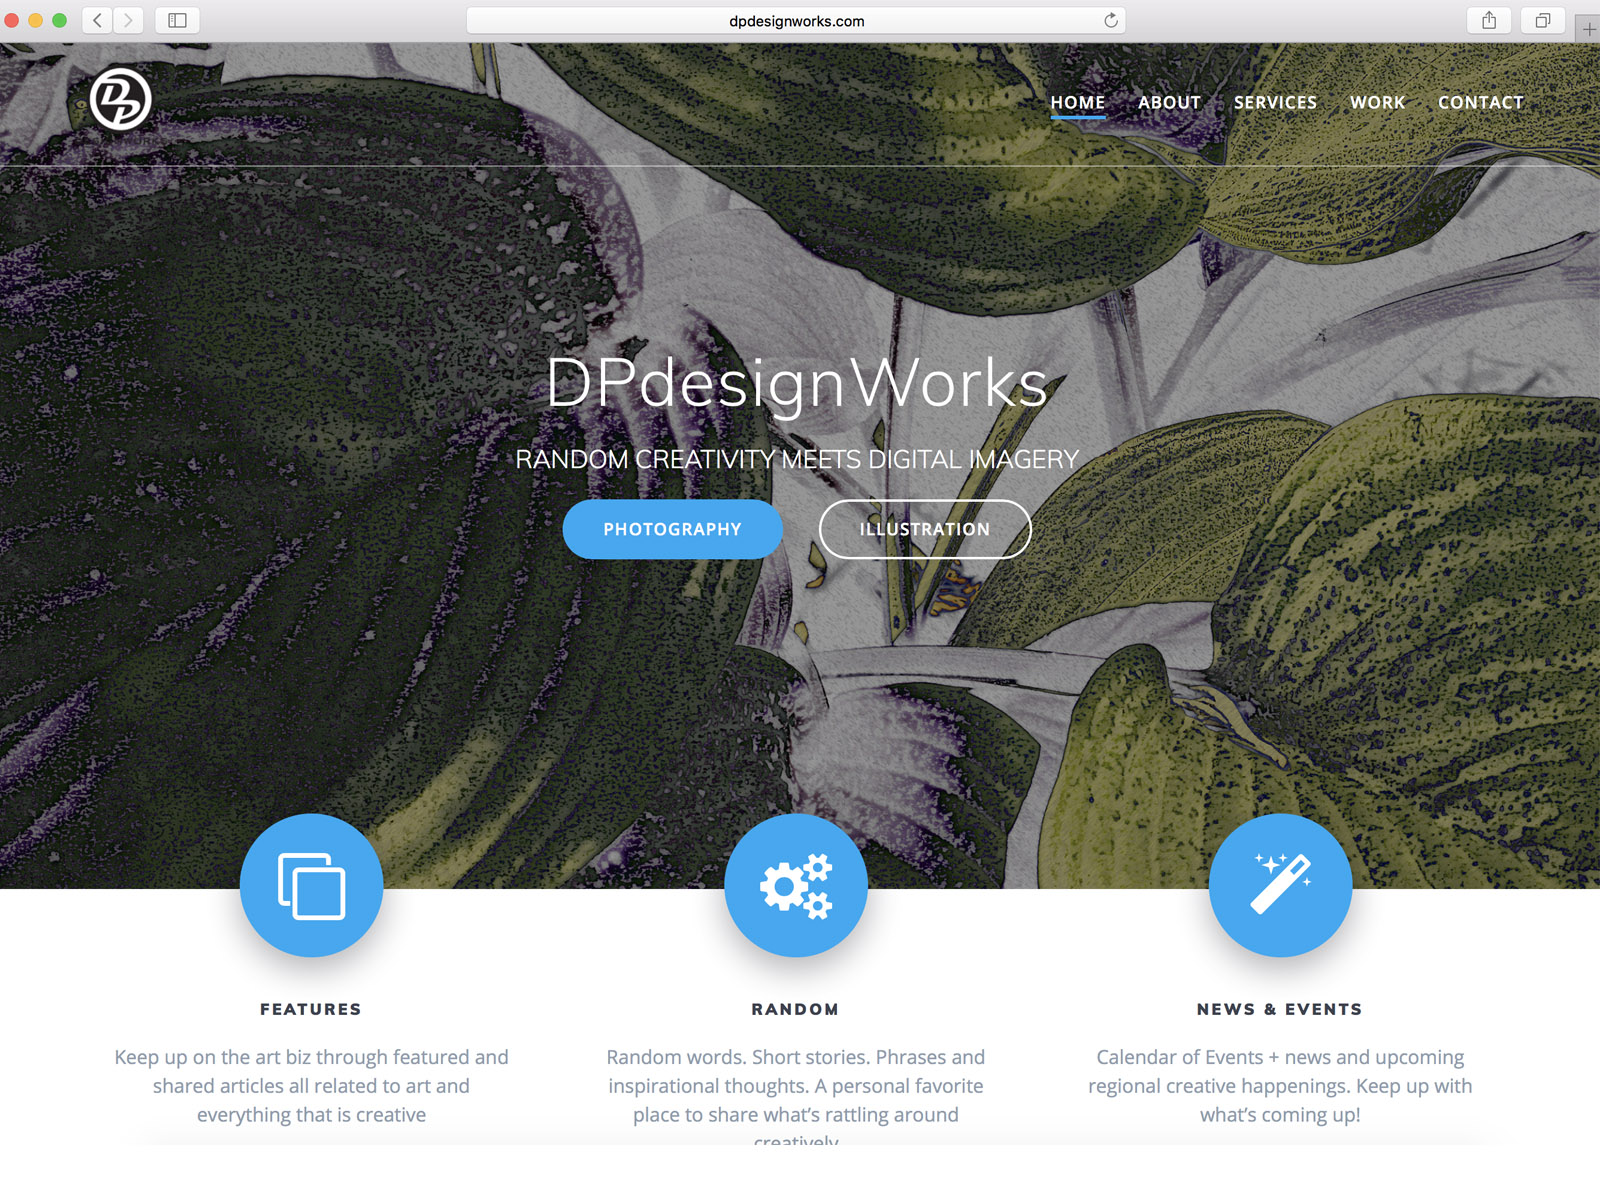 DPdesignWorks Home Page